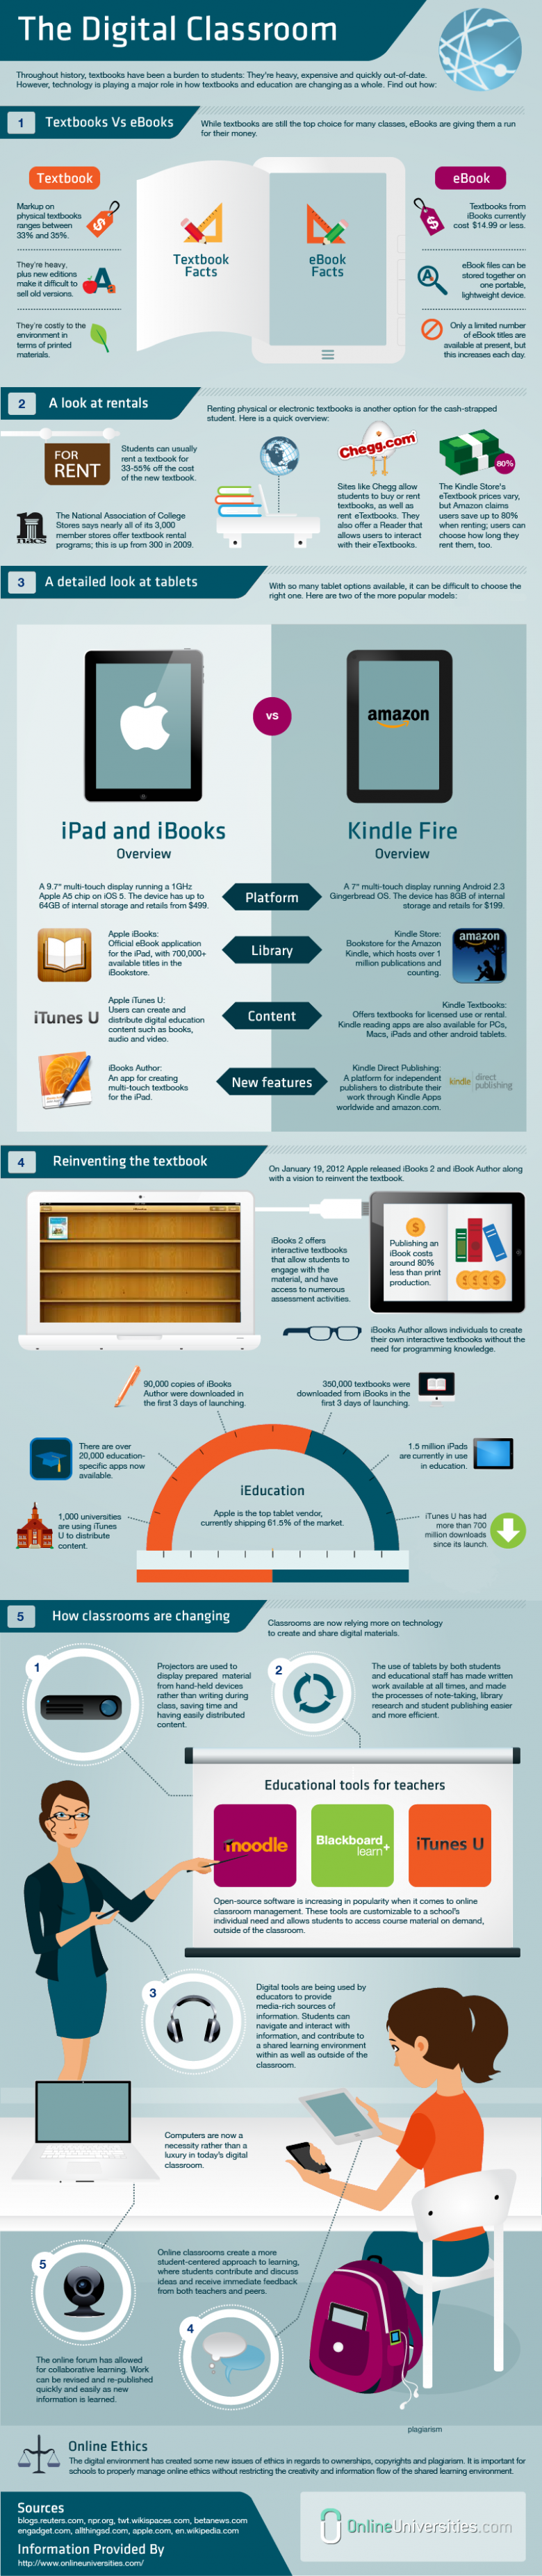 Comparison of mobile devices for classrooms